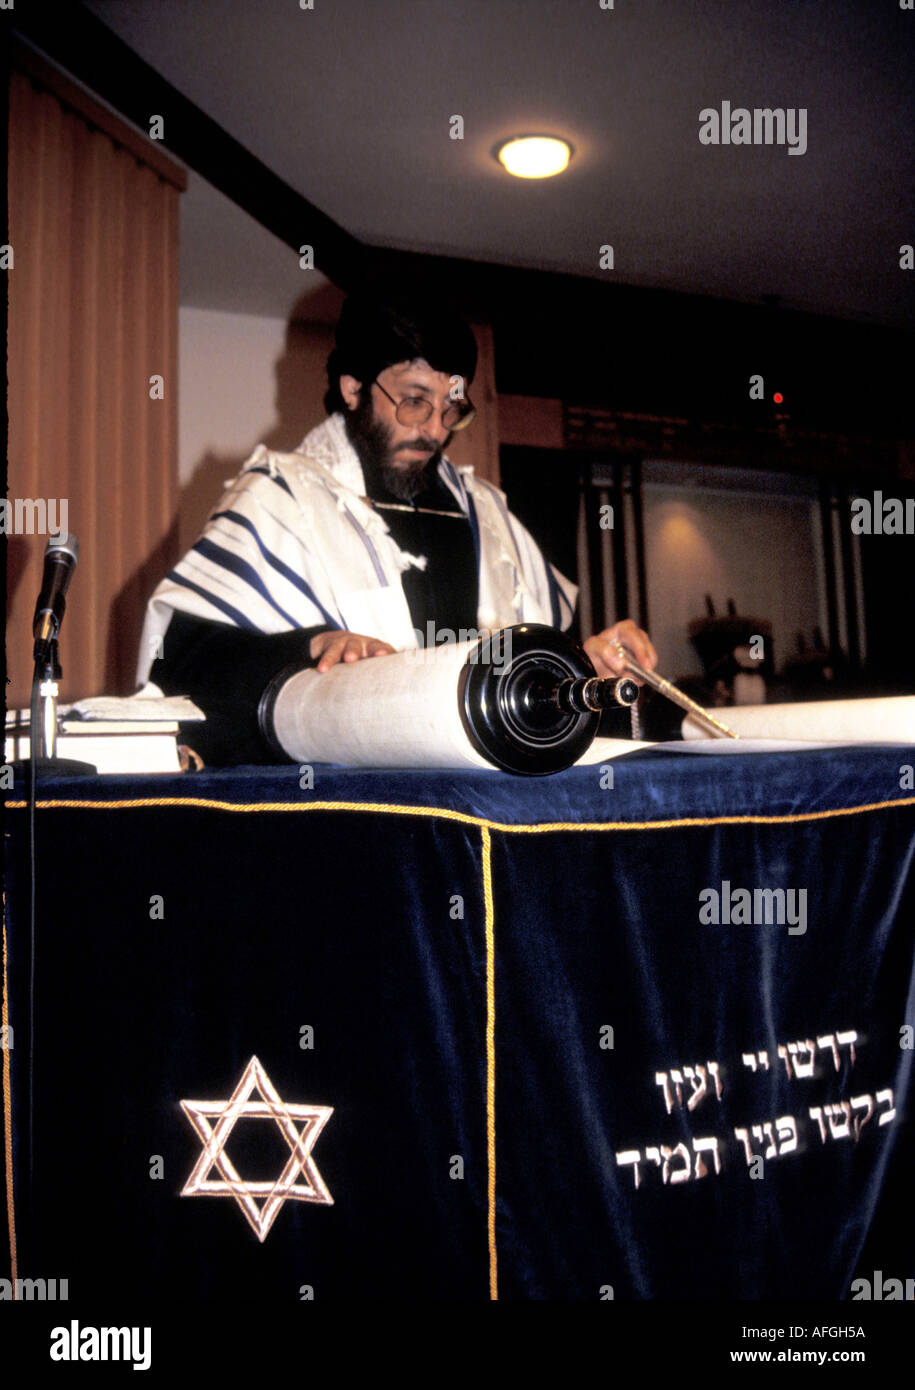 A rabbi reads from the scrolls in a Jewish reformed synagogue London - Stock Image